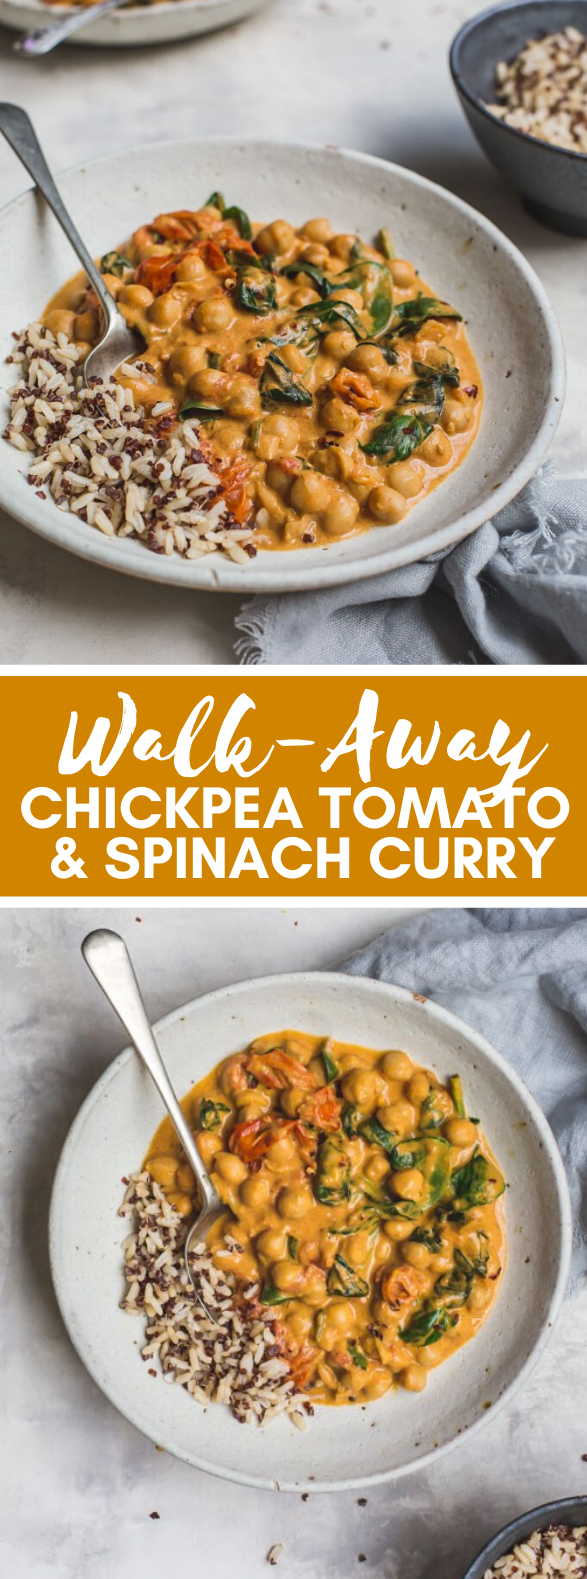 Walk-Away Chickpea Tomato and Spinach Curry #vegan #glutenfree